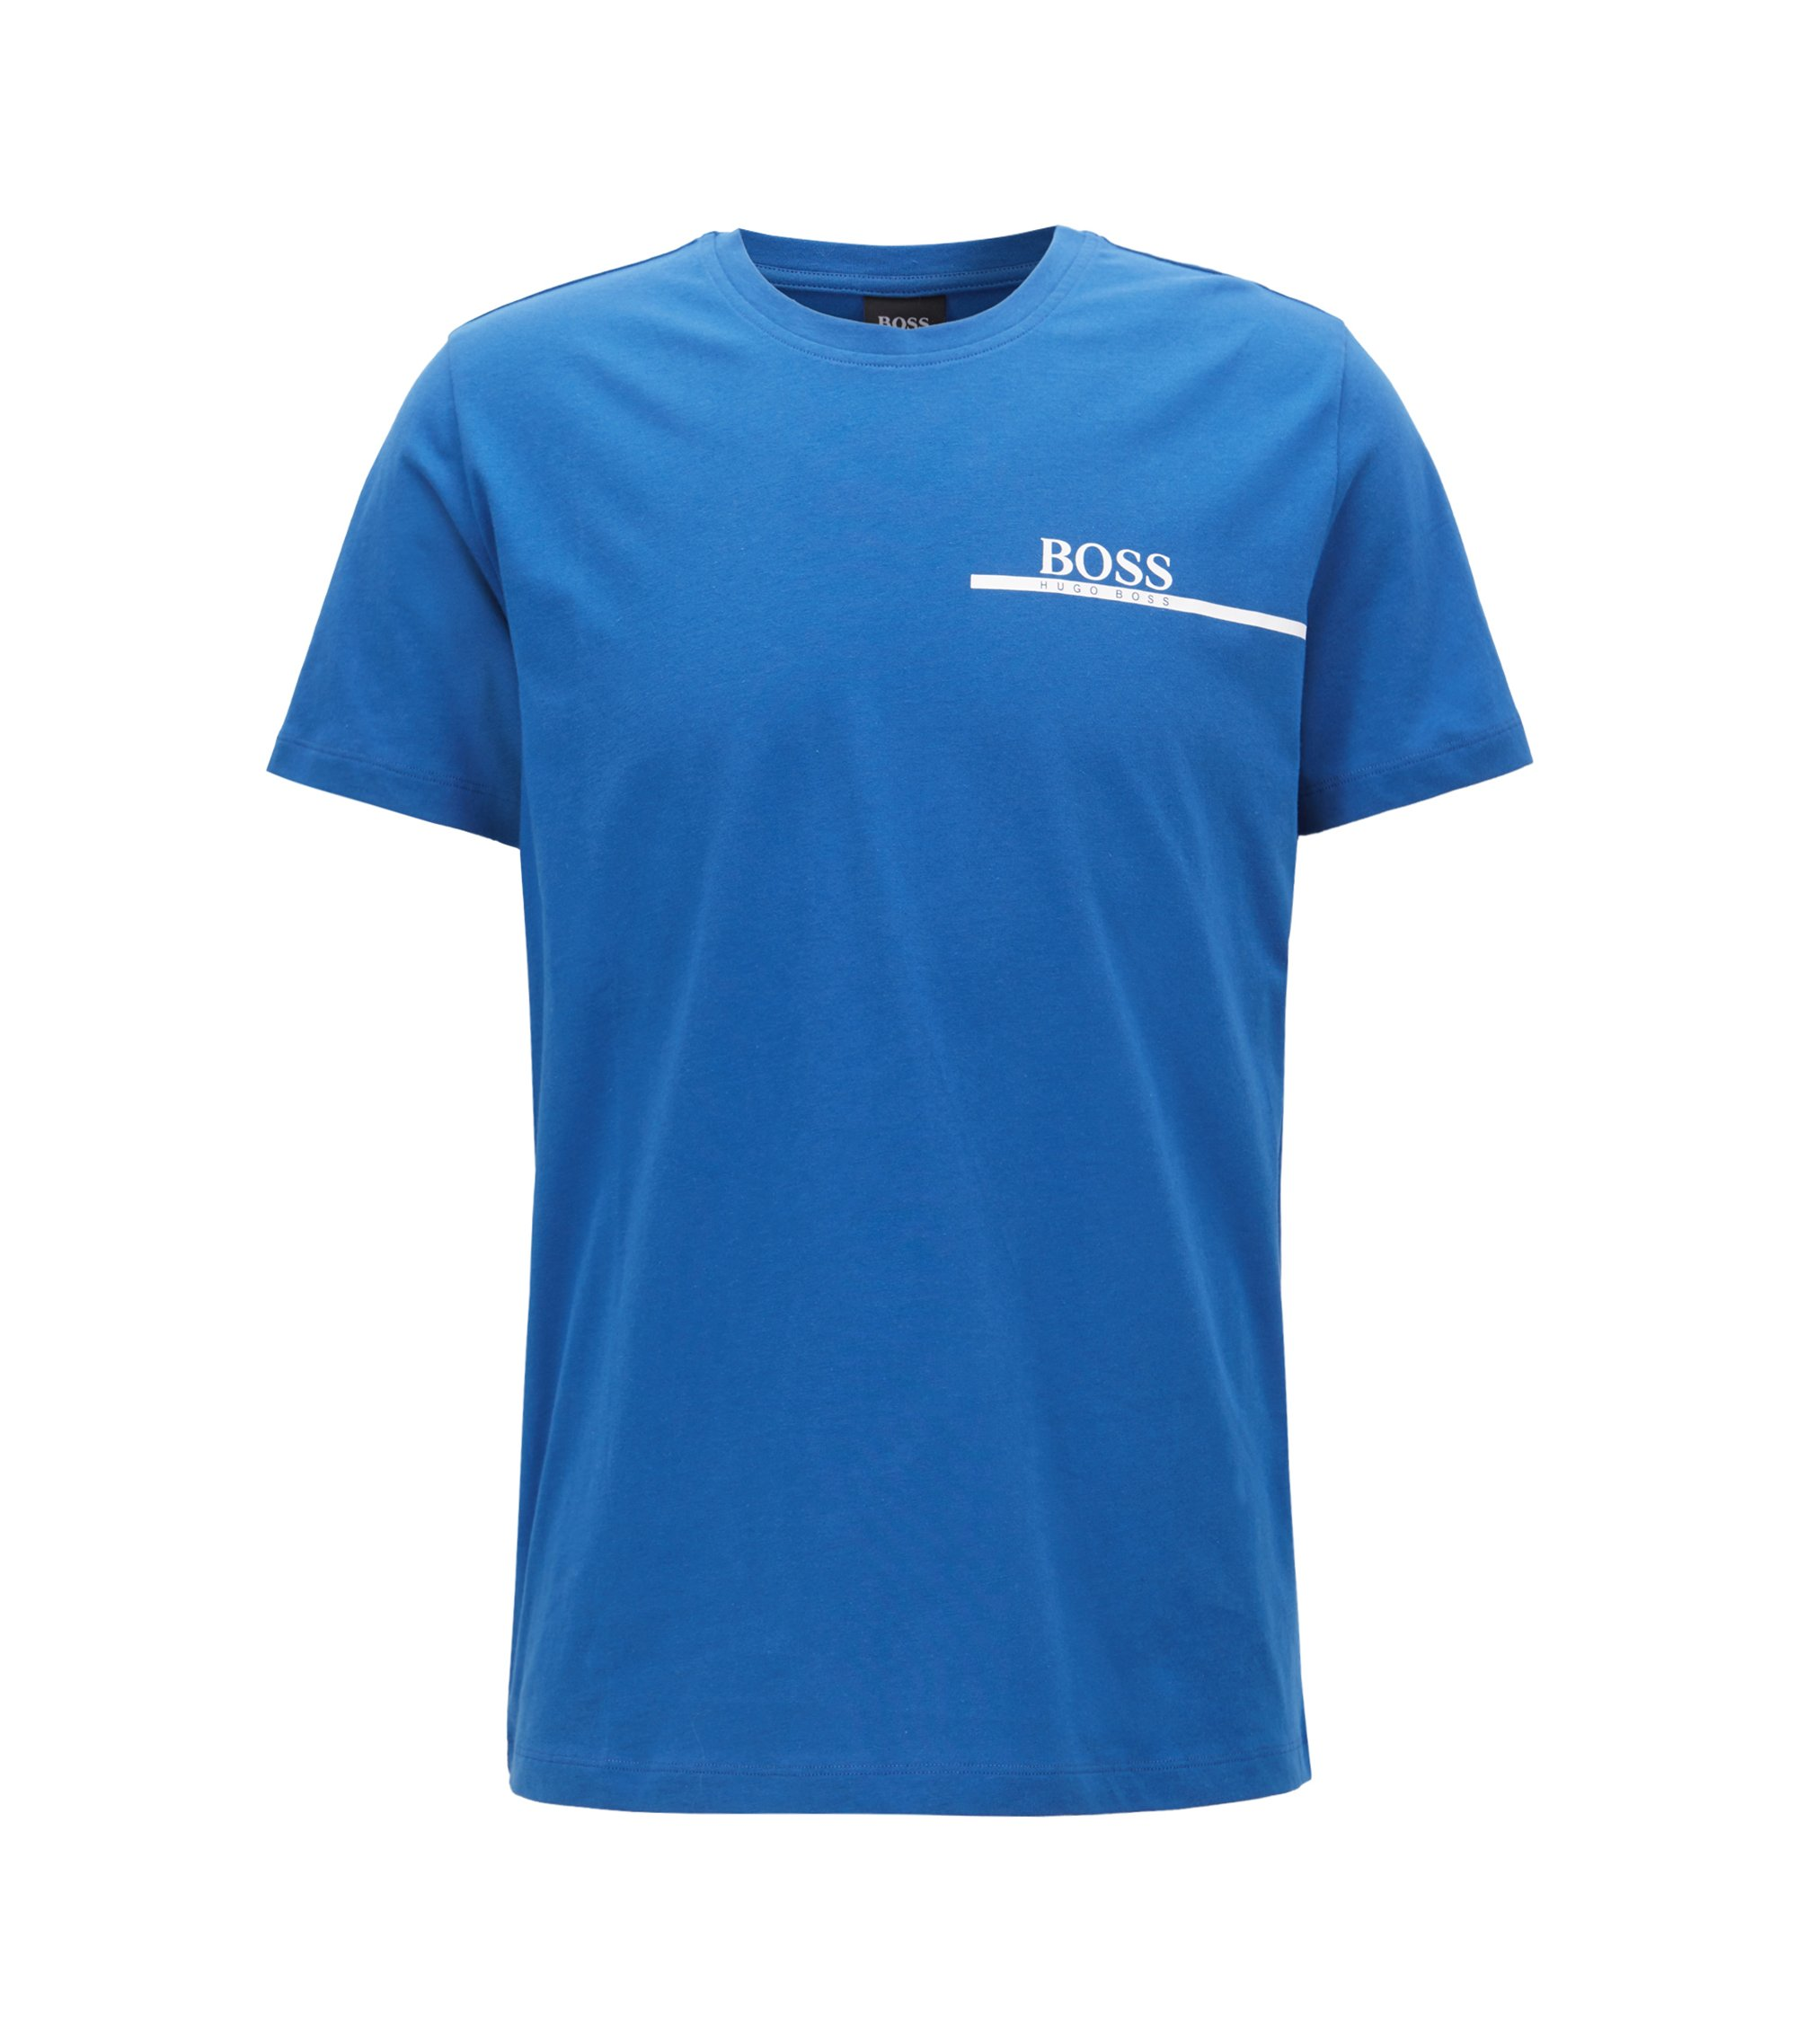 T-shirt relaxed fit in cotone con logo stampato, Blu